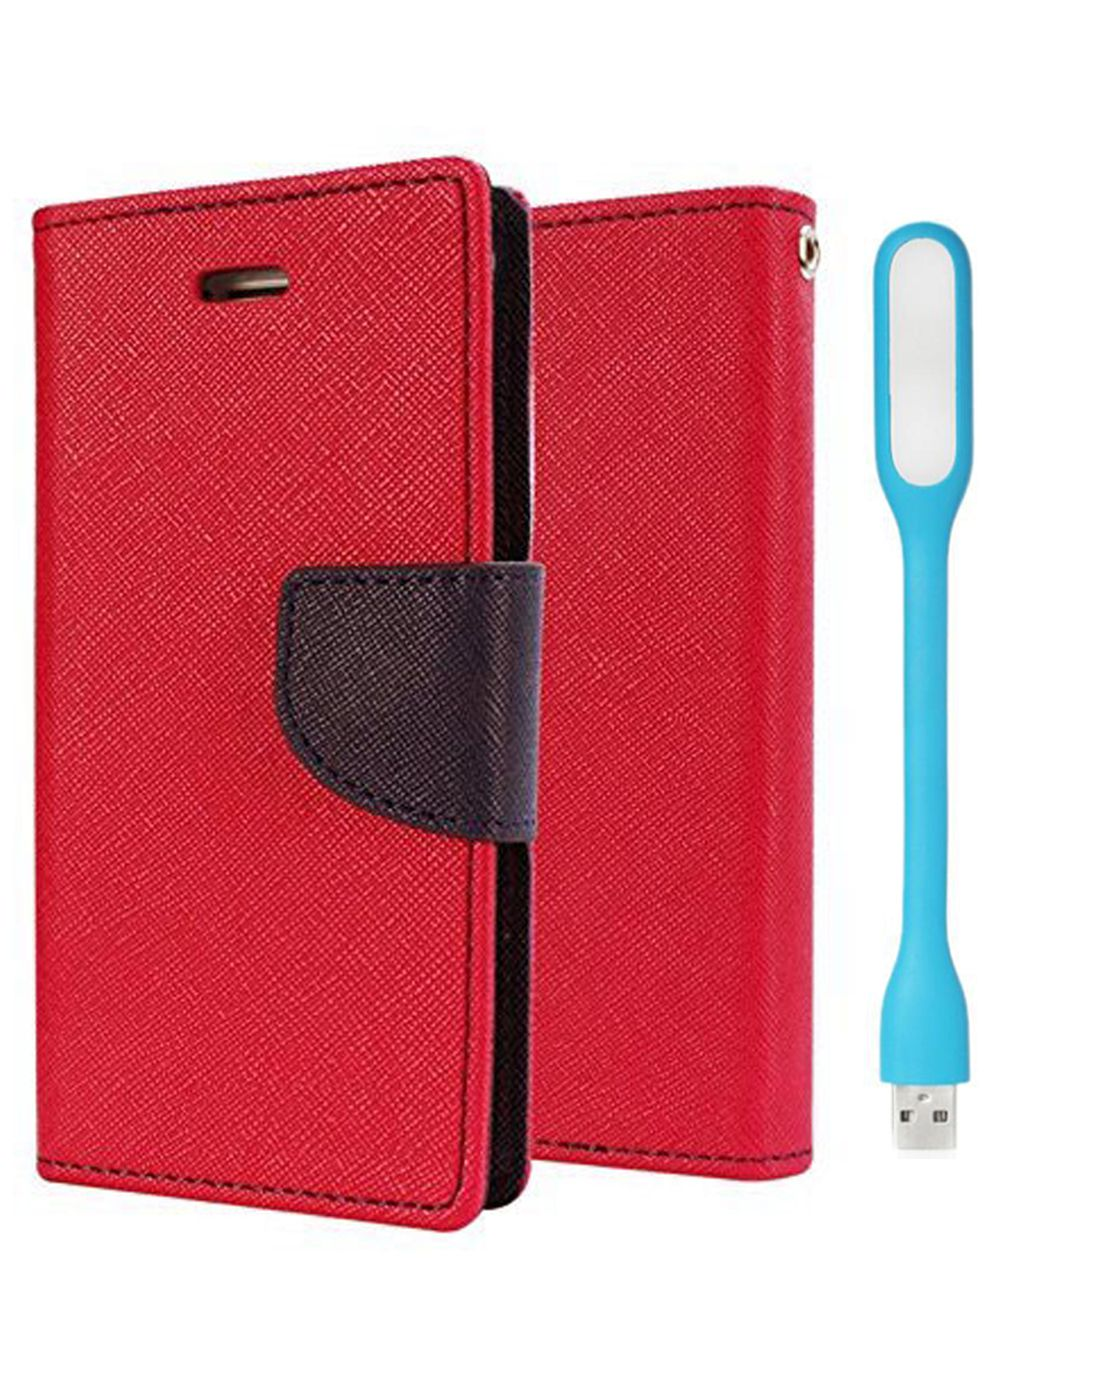 Wallet Flip Case Back Cover For Samsung E5 - (Red) + Flexible Mini LED Stick Lamp Light By Style Crome